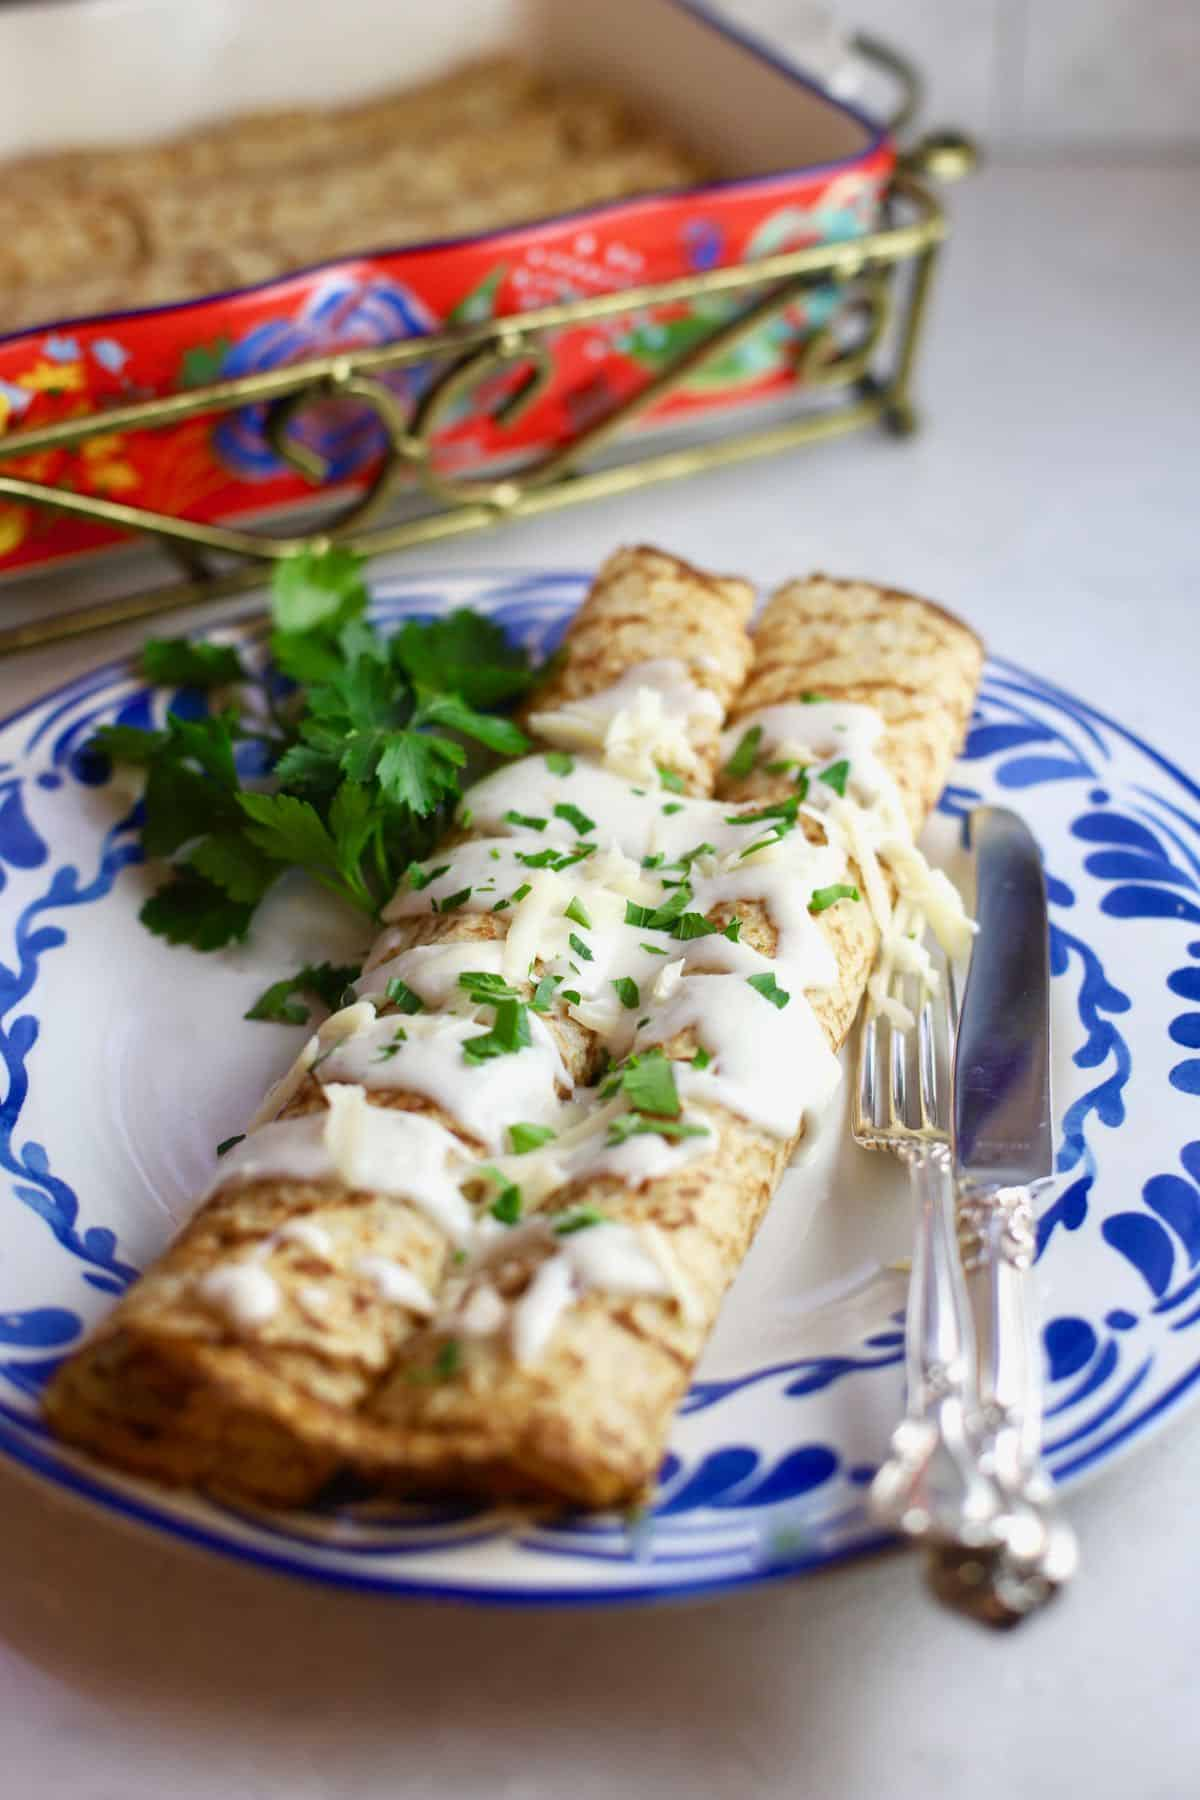 Chicken crepes on a blue and white dish with a knife and fork.